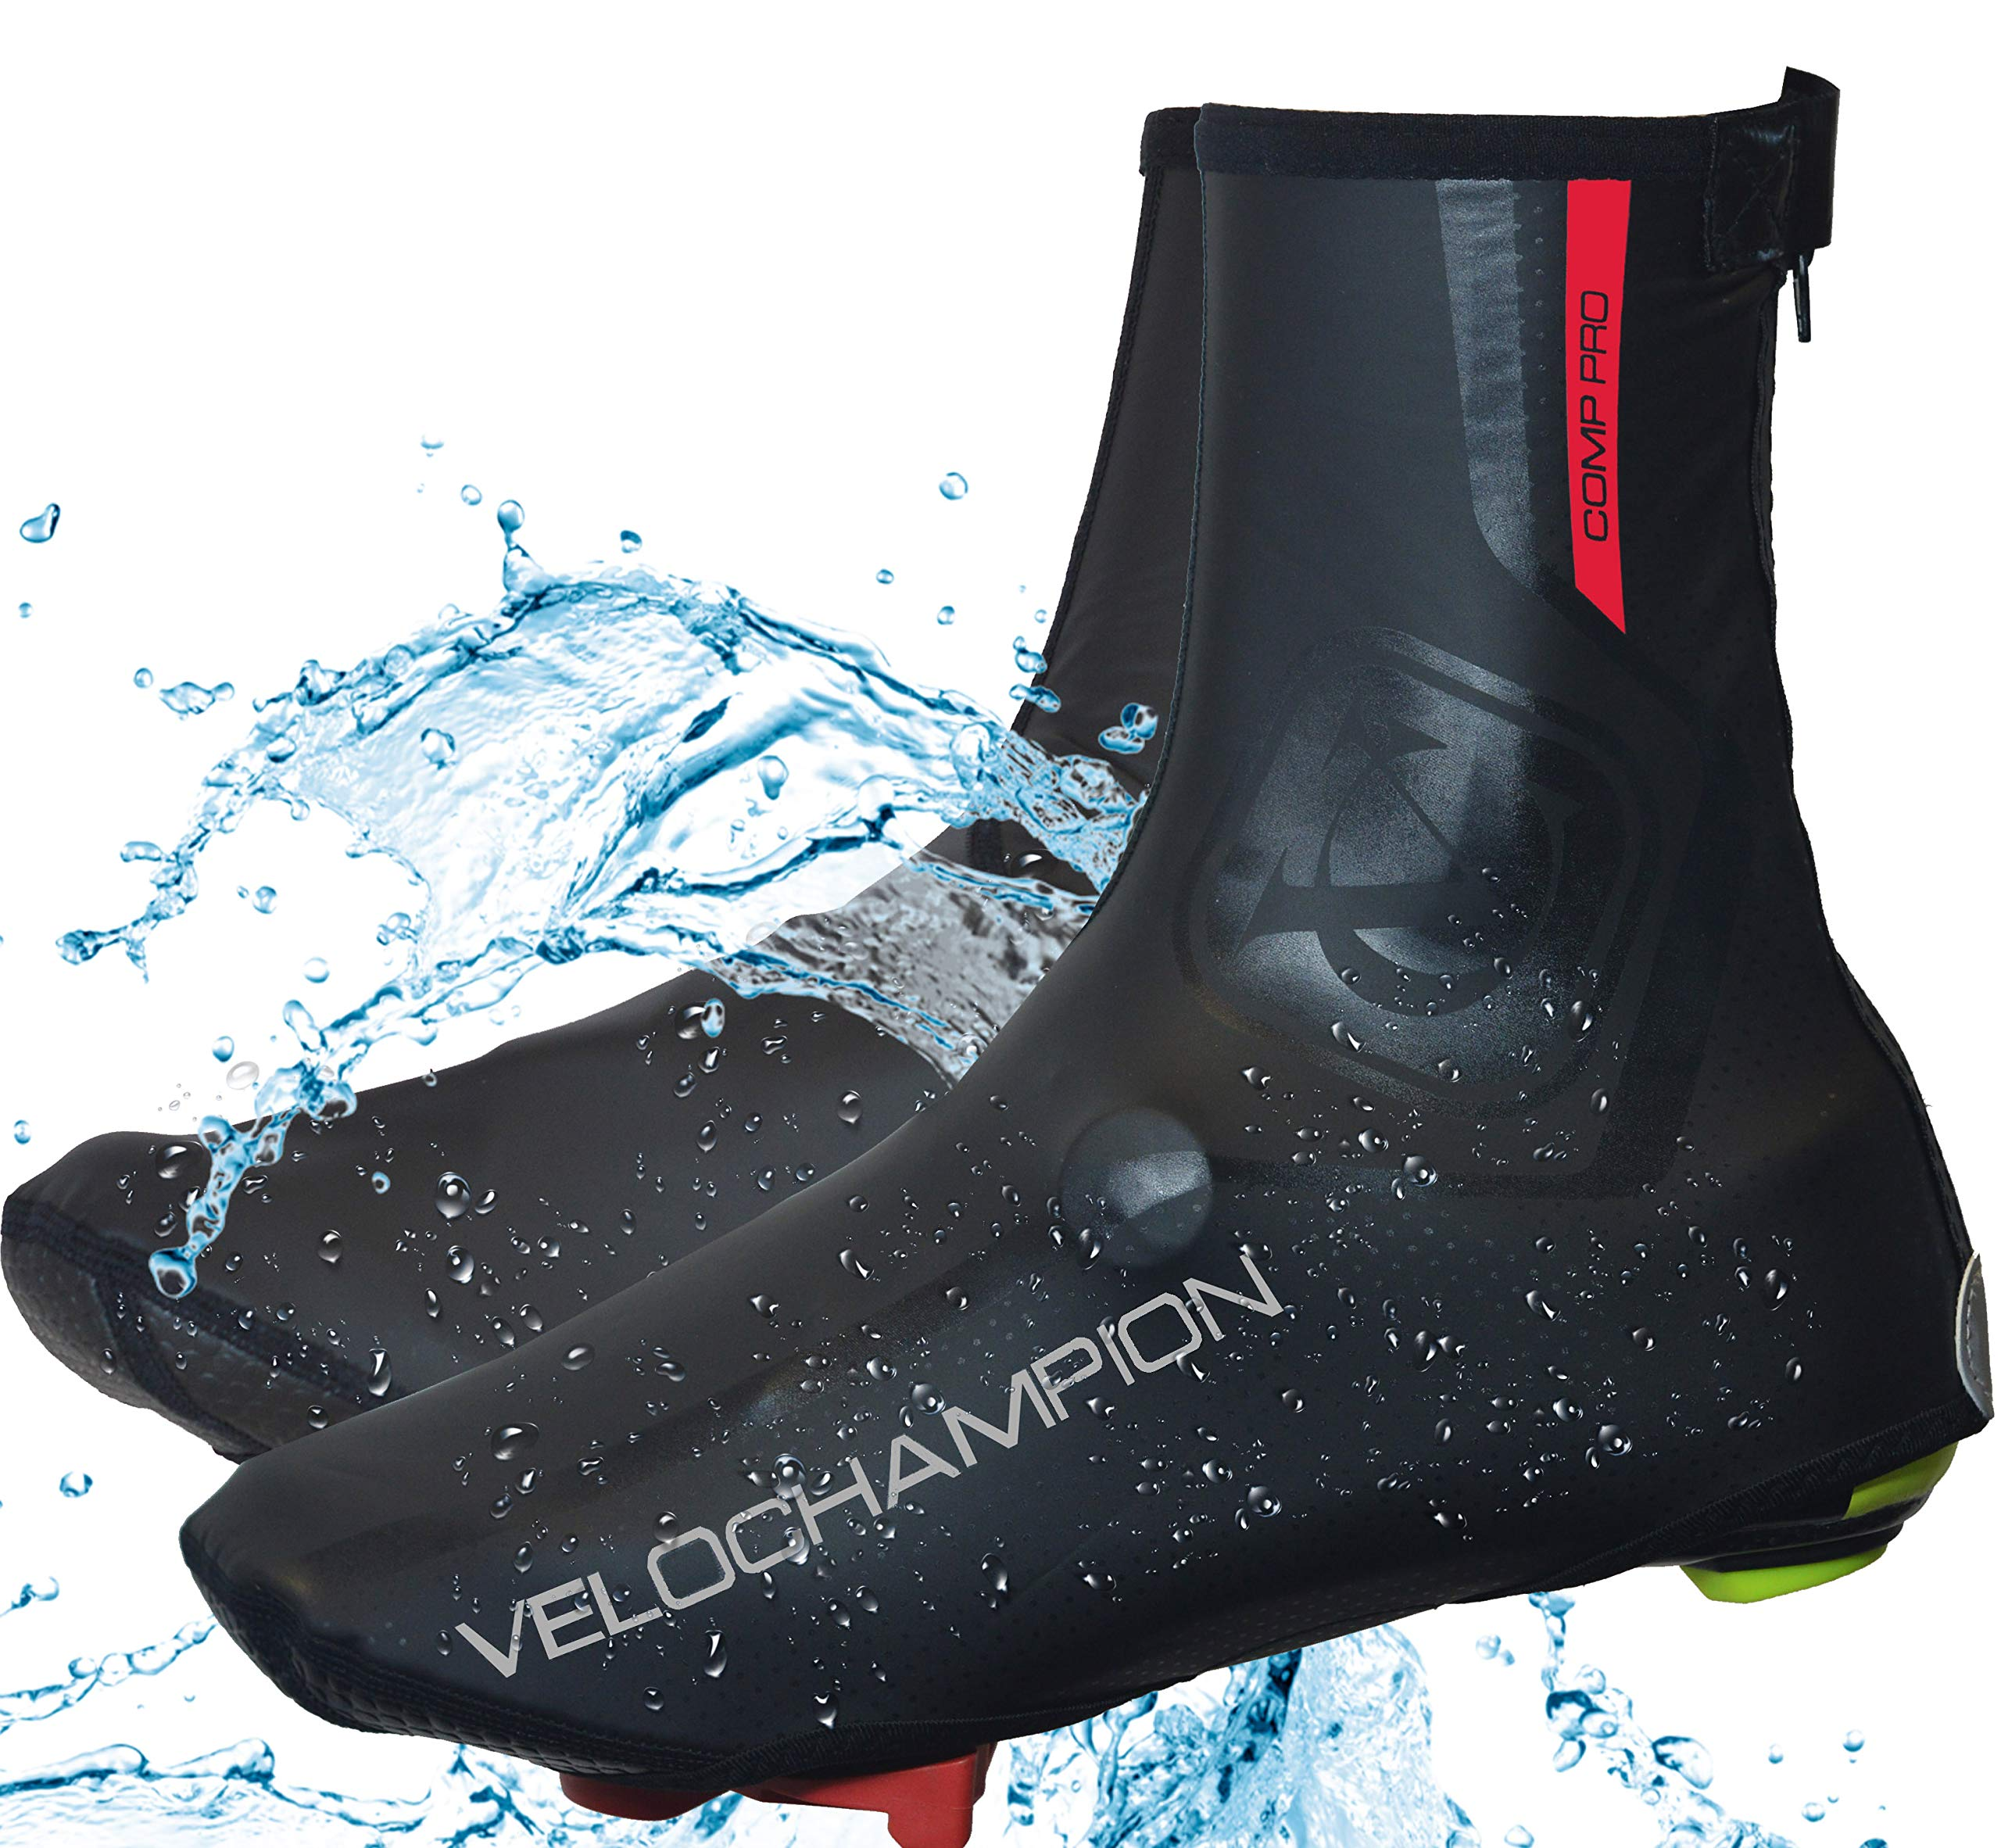 VeloChampion VC Comp Pro Waterproof Overshoes (S-M)